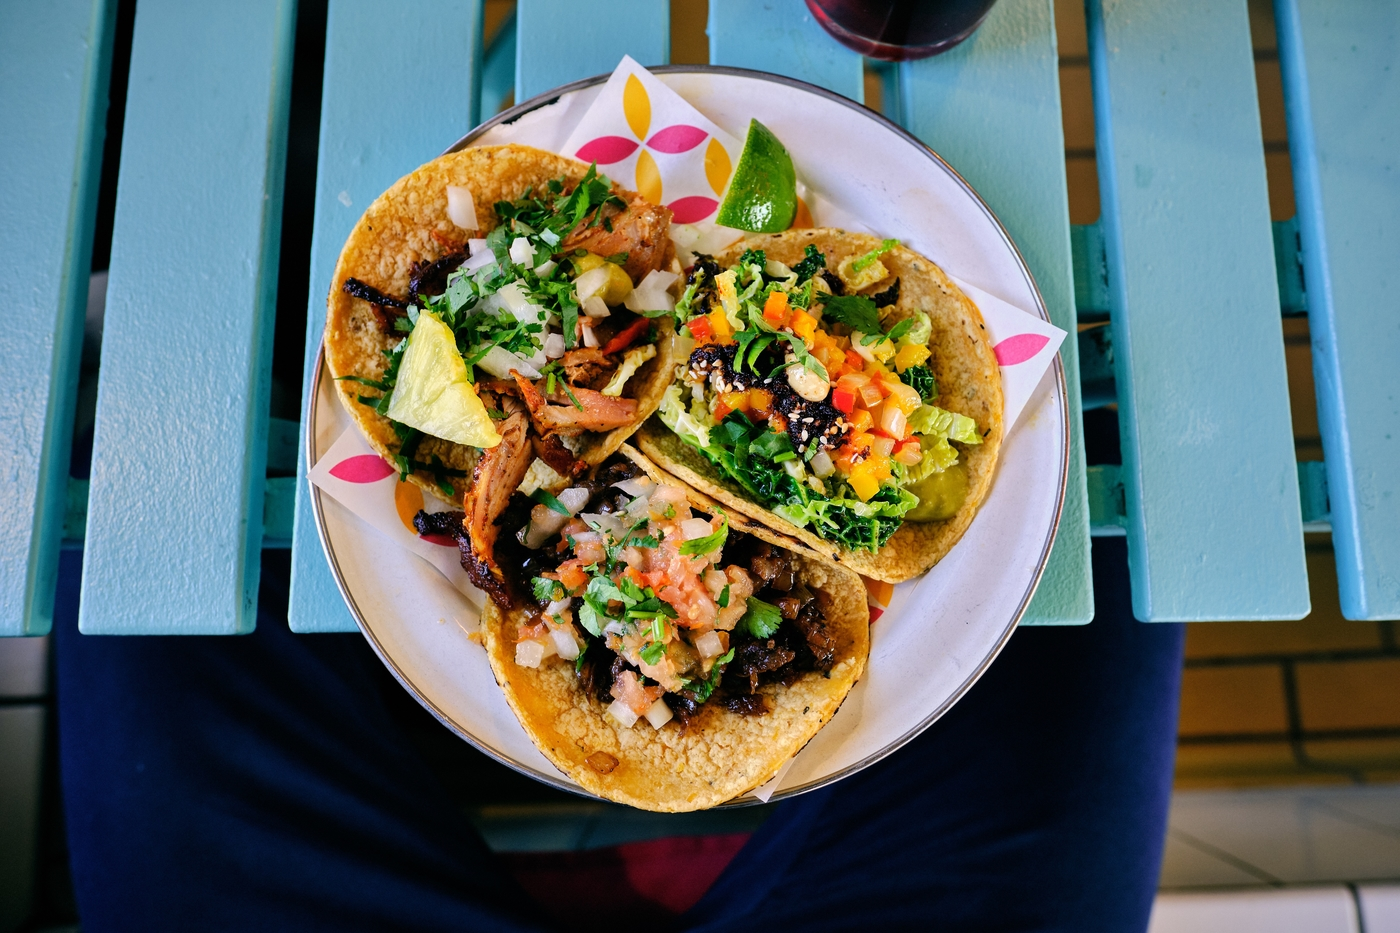 Mexican restaurants in Hong Kong: Where to find wickedly good tacos, tequila, and margaritas